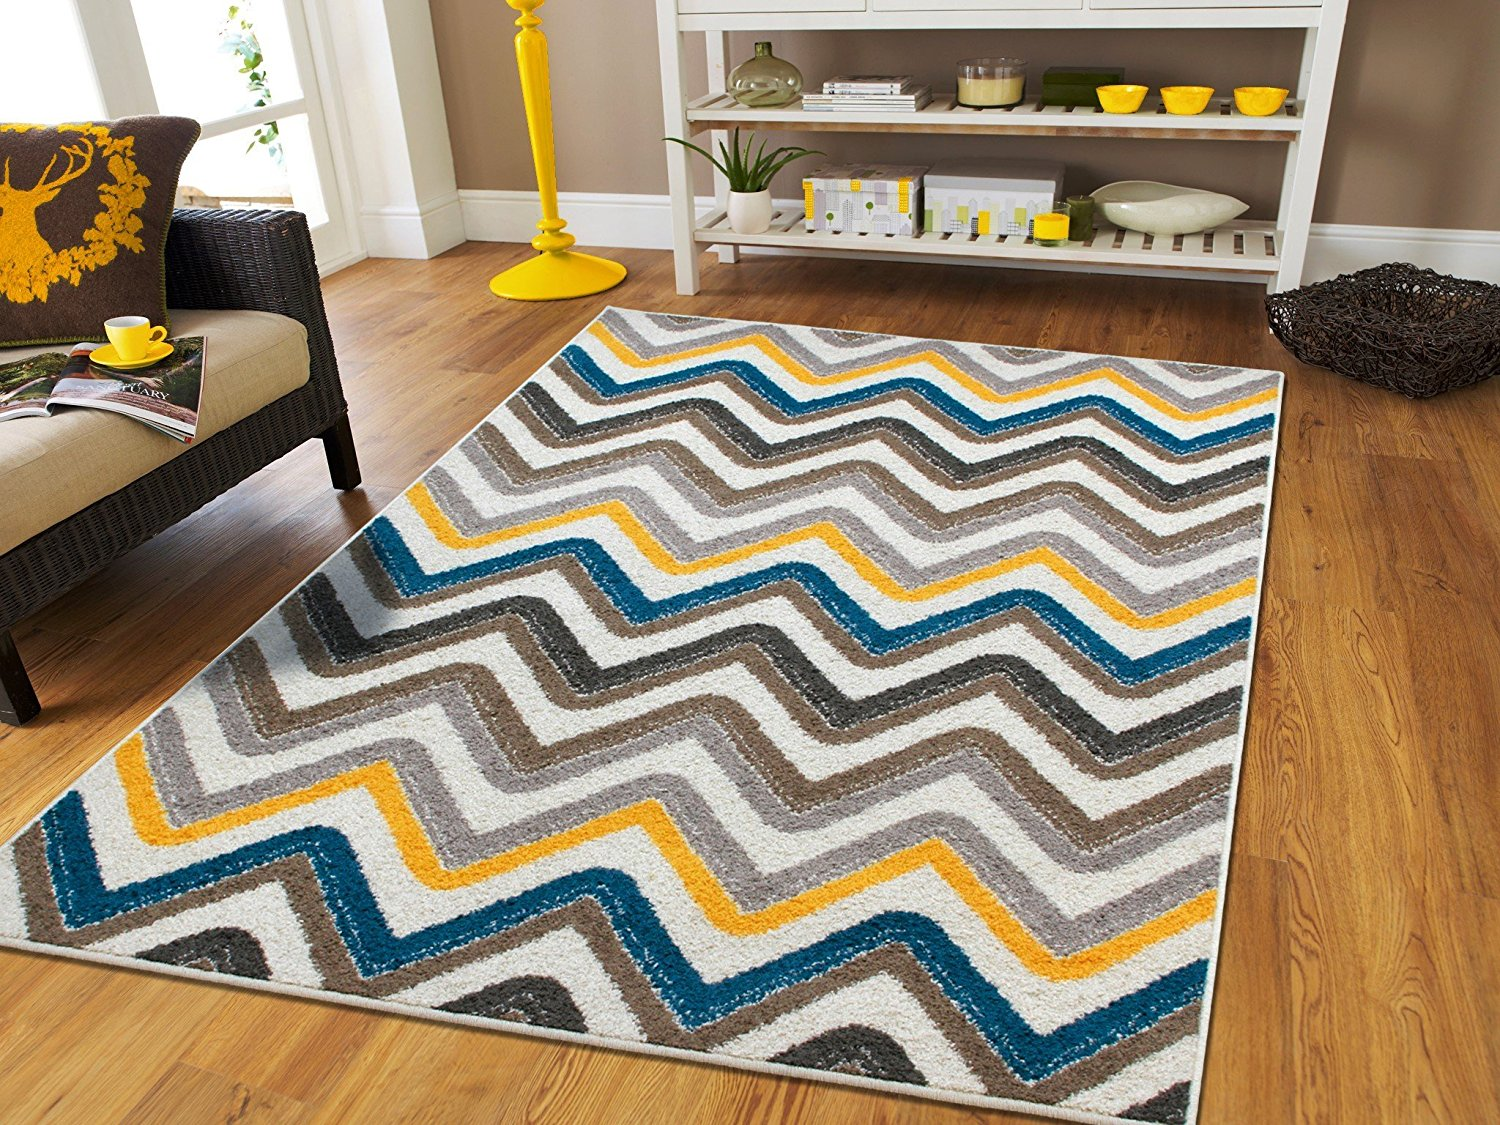 New Fashion Luxury Chevron 5x8 Large Rugs For Living Room Gray Cream Blue  Yellow Brown Washable